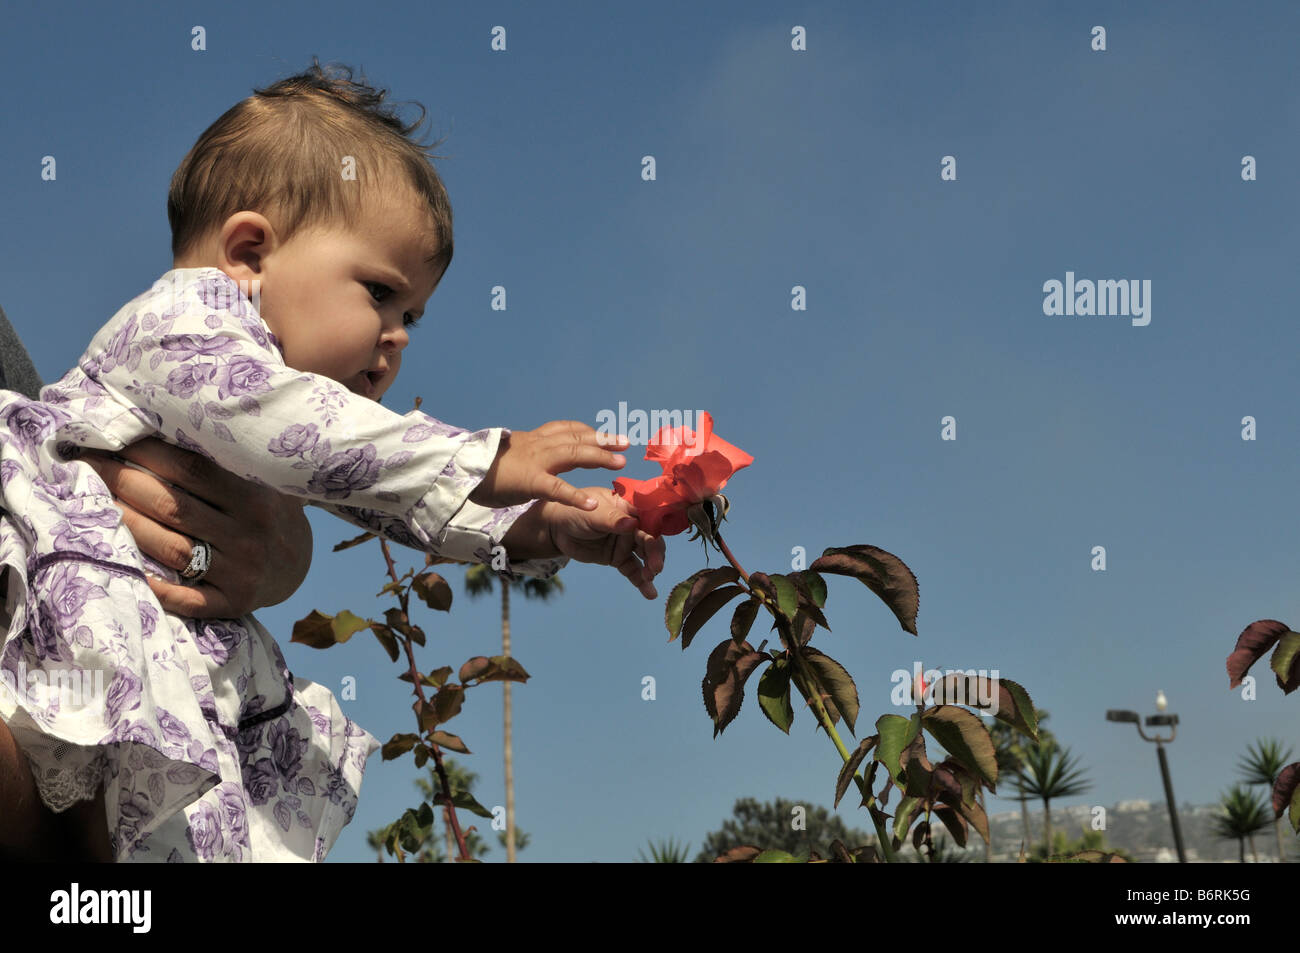 American baby girl held near a beautiful red flower Stock Photo ...